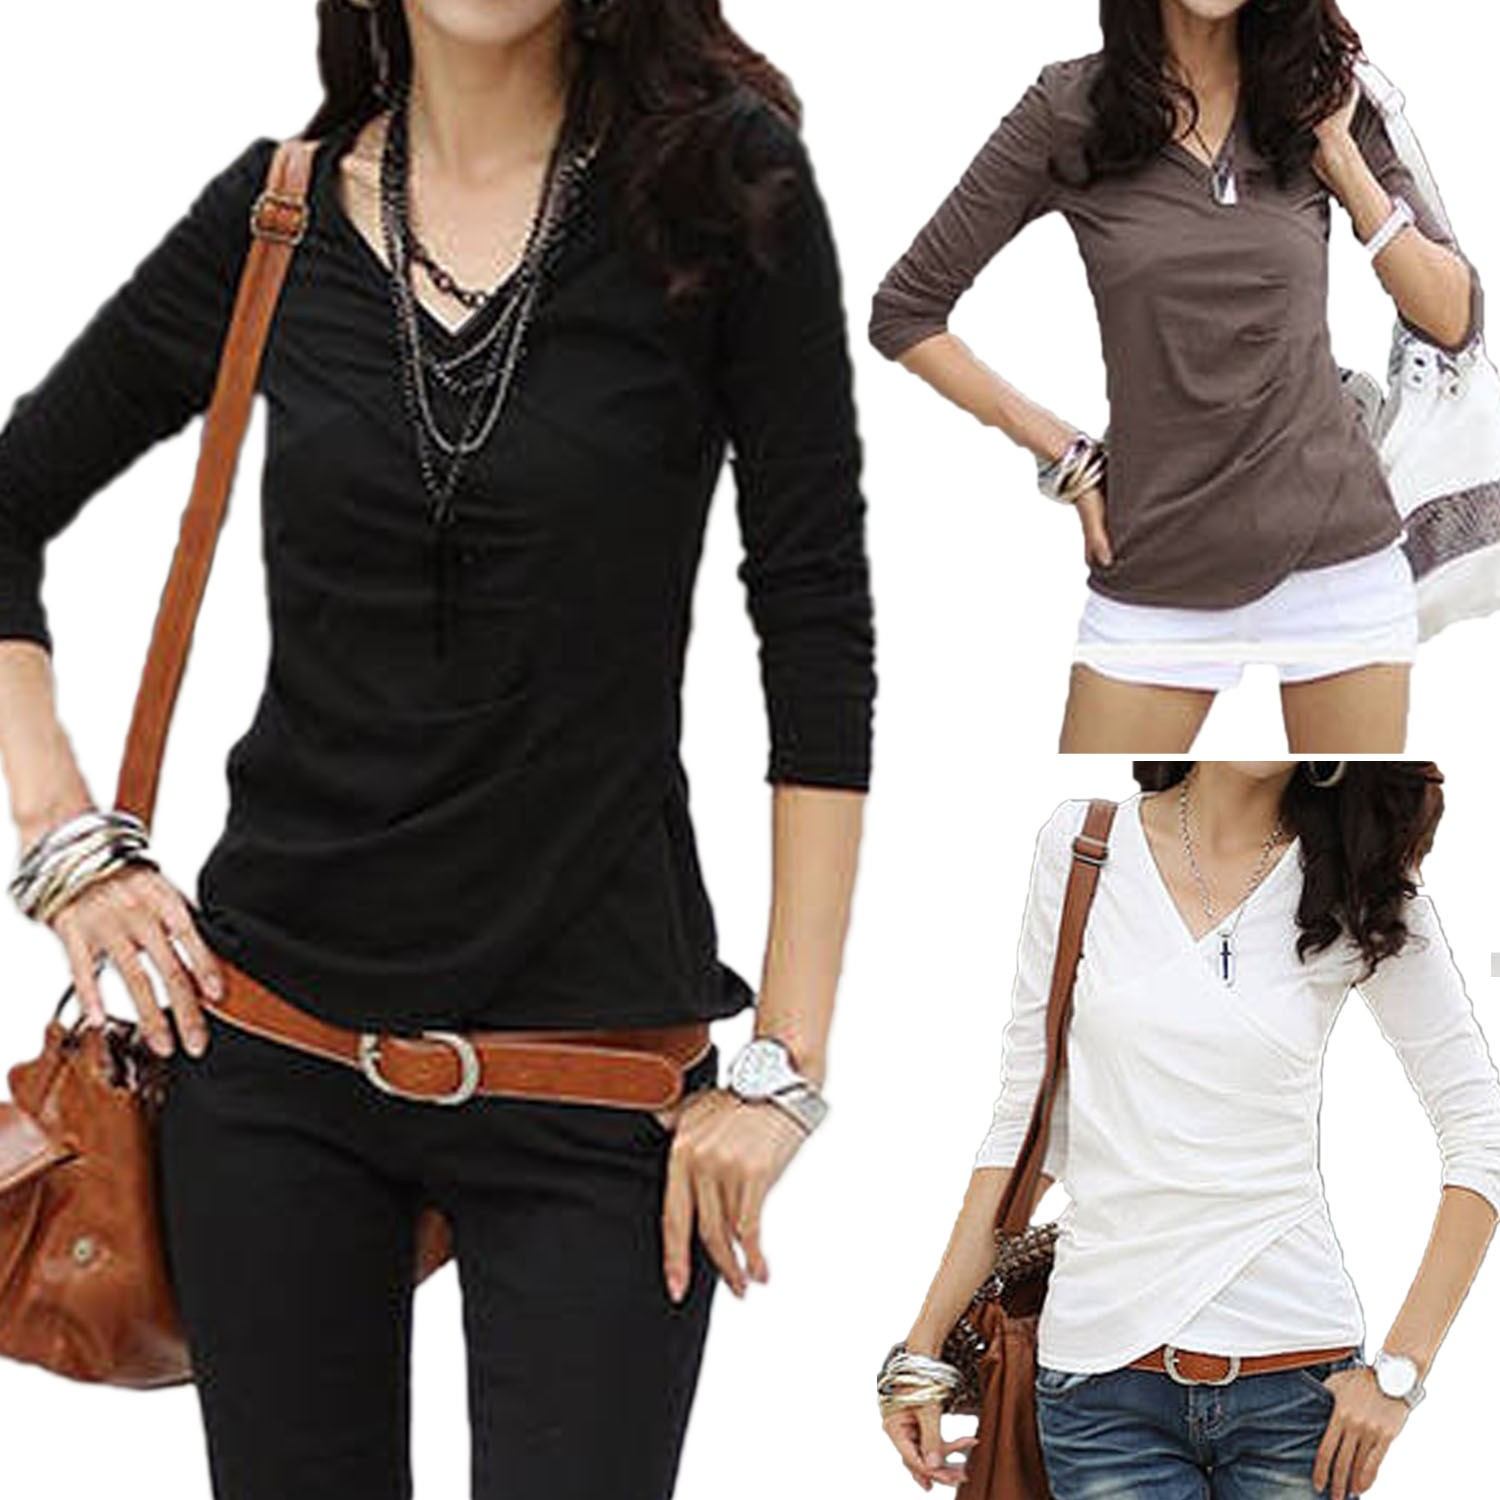 Black/Brown/White Summer Cotton V Neck Top Blouse AU 6 8 10 12 14 Wrap Womens